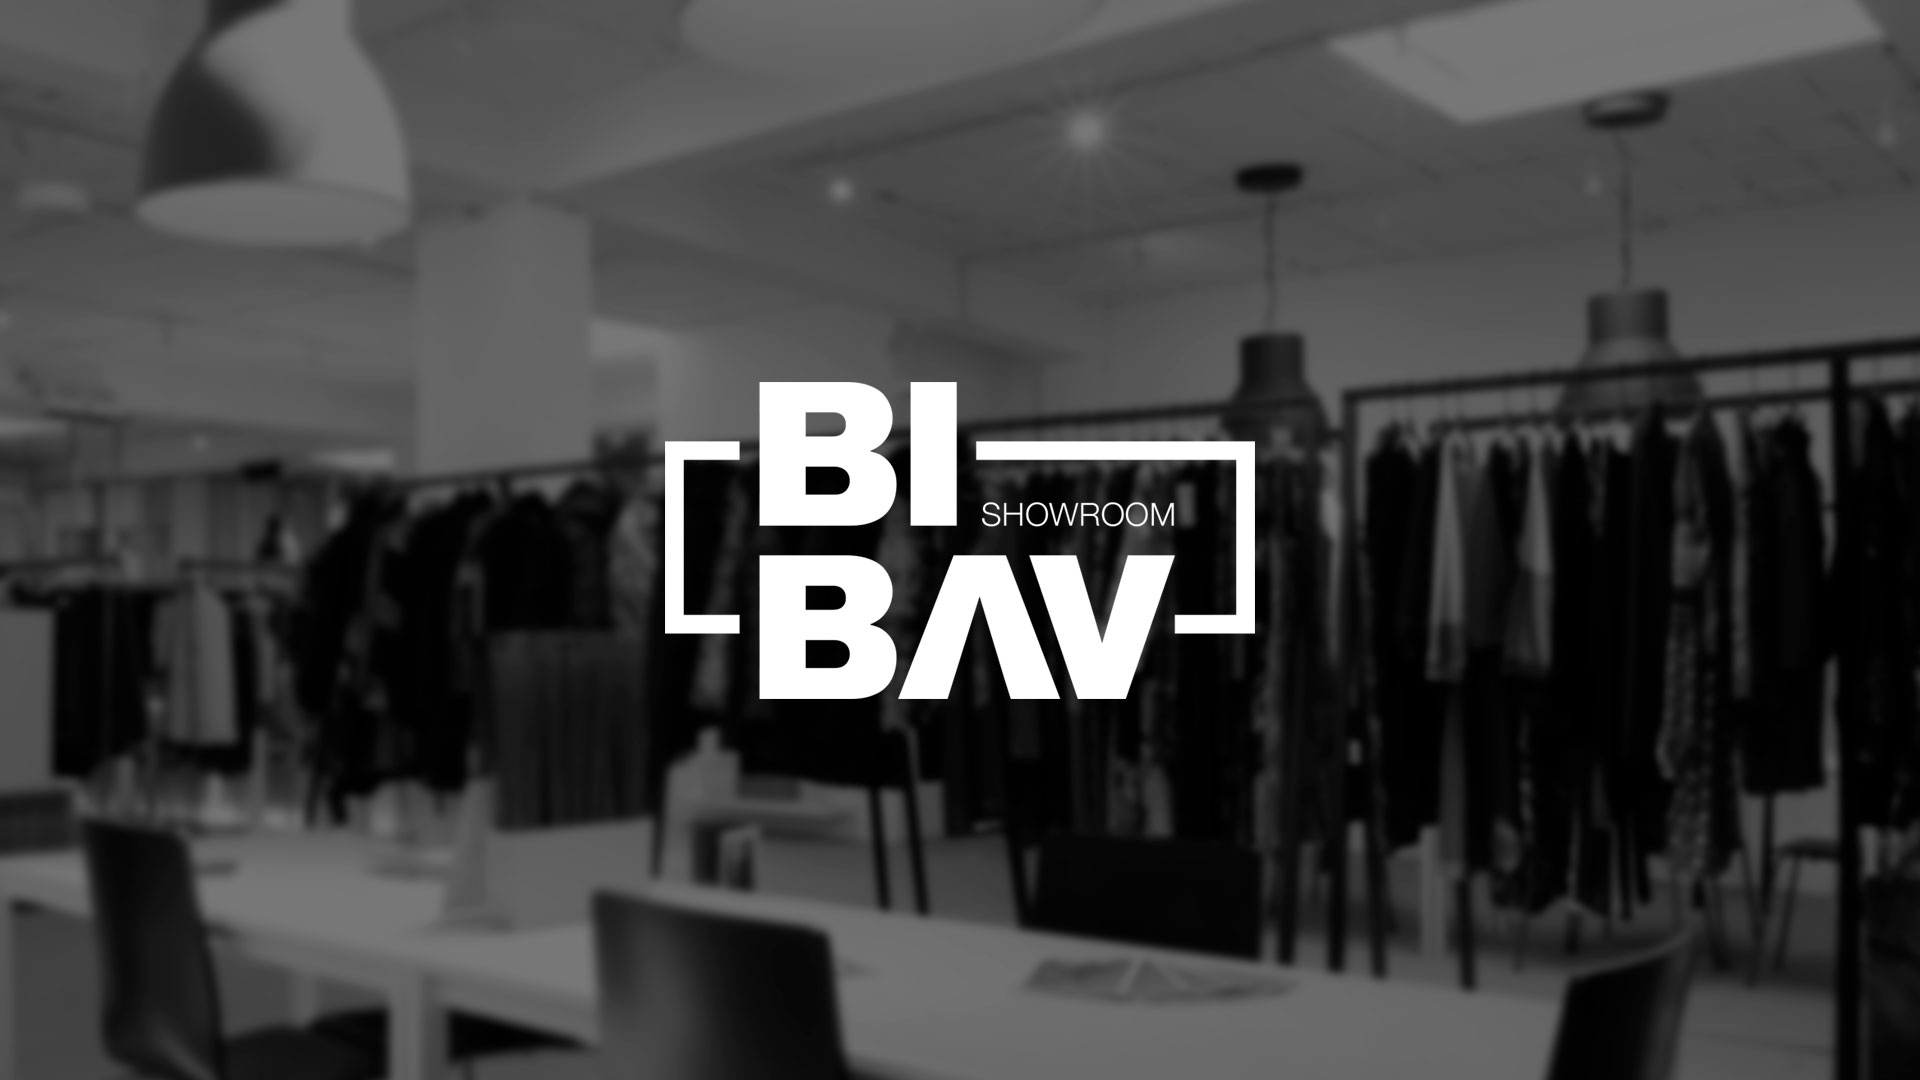 Bibav Showroom